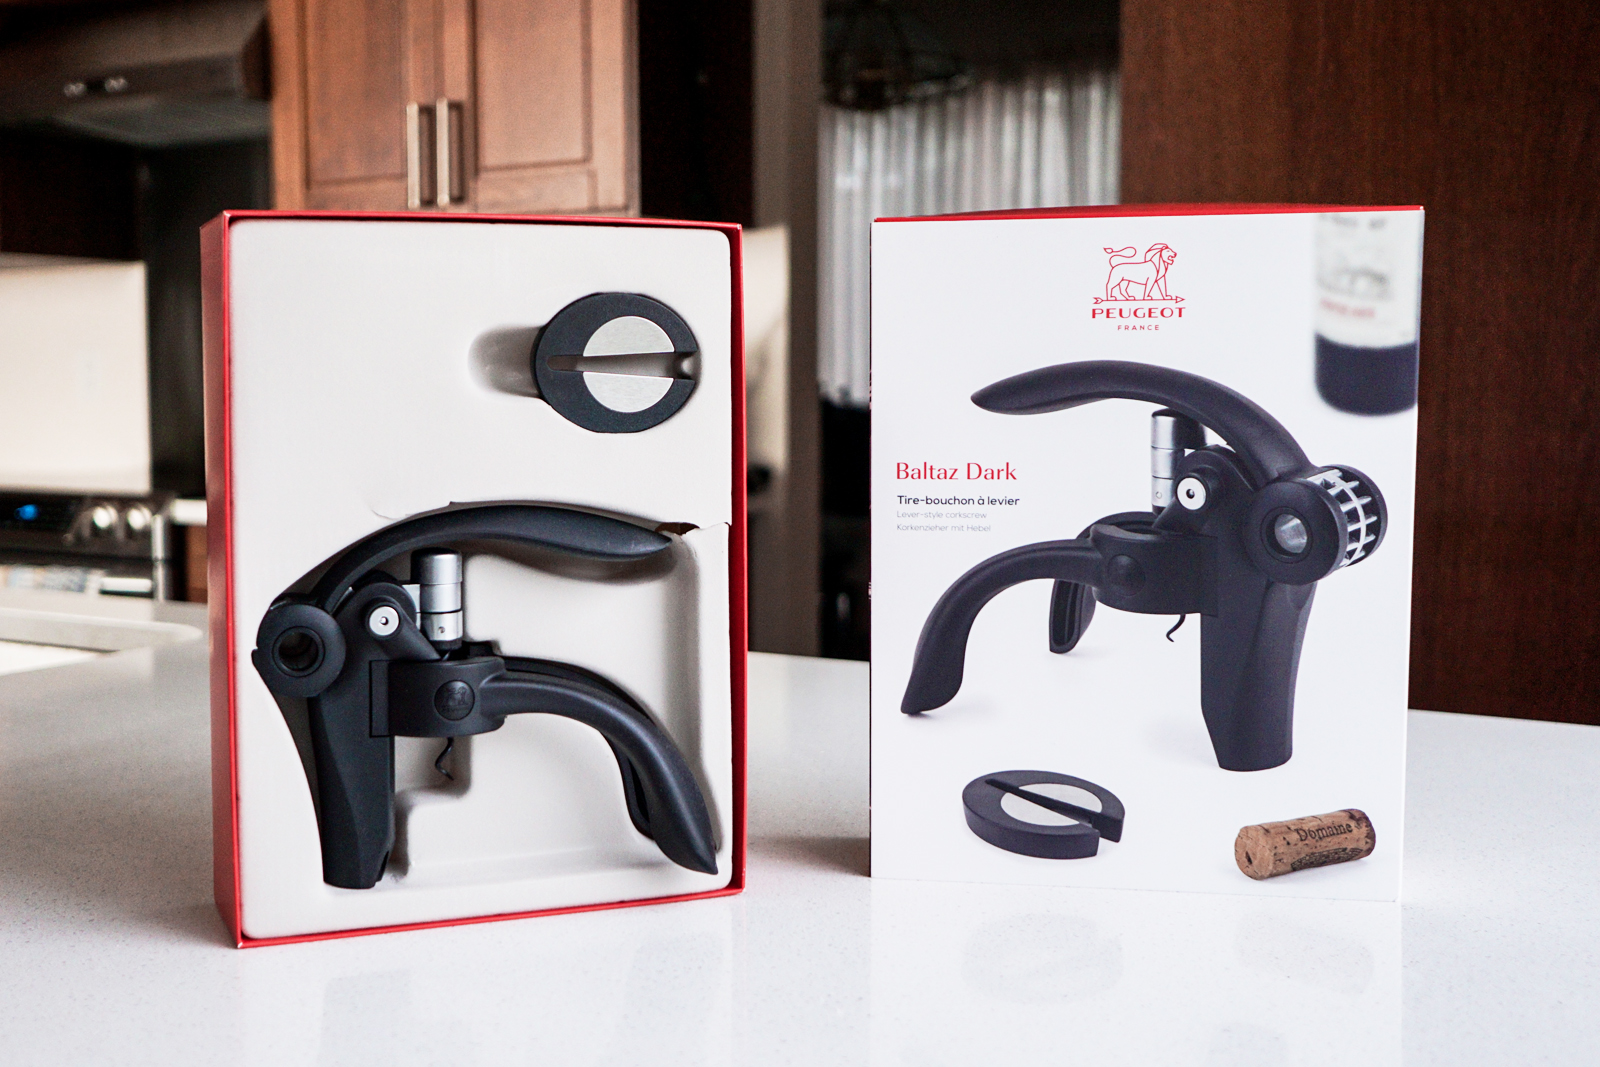 Peugeot corkscrew review